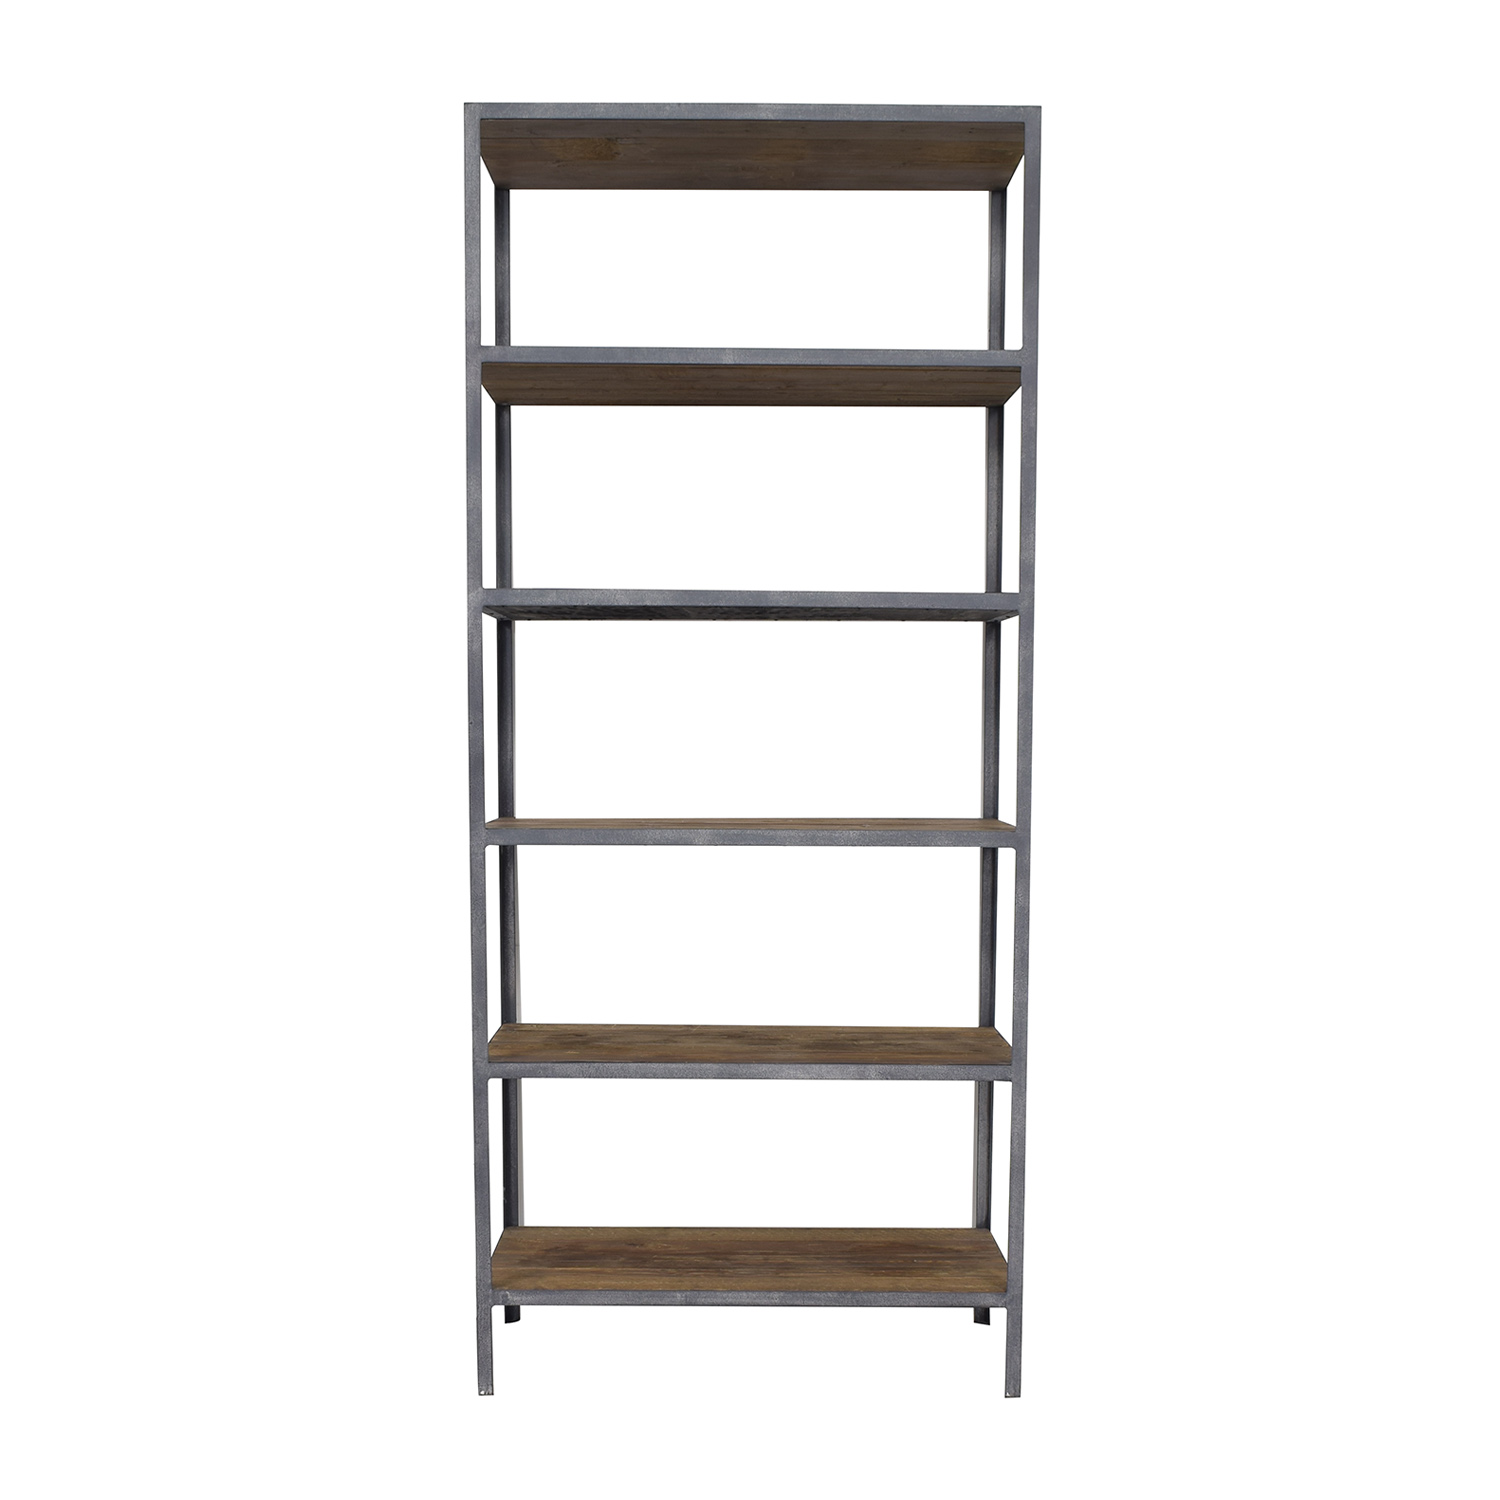 Restoration Hardware Restoration Hardware Vintage Industrial Single Shelving used